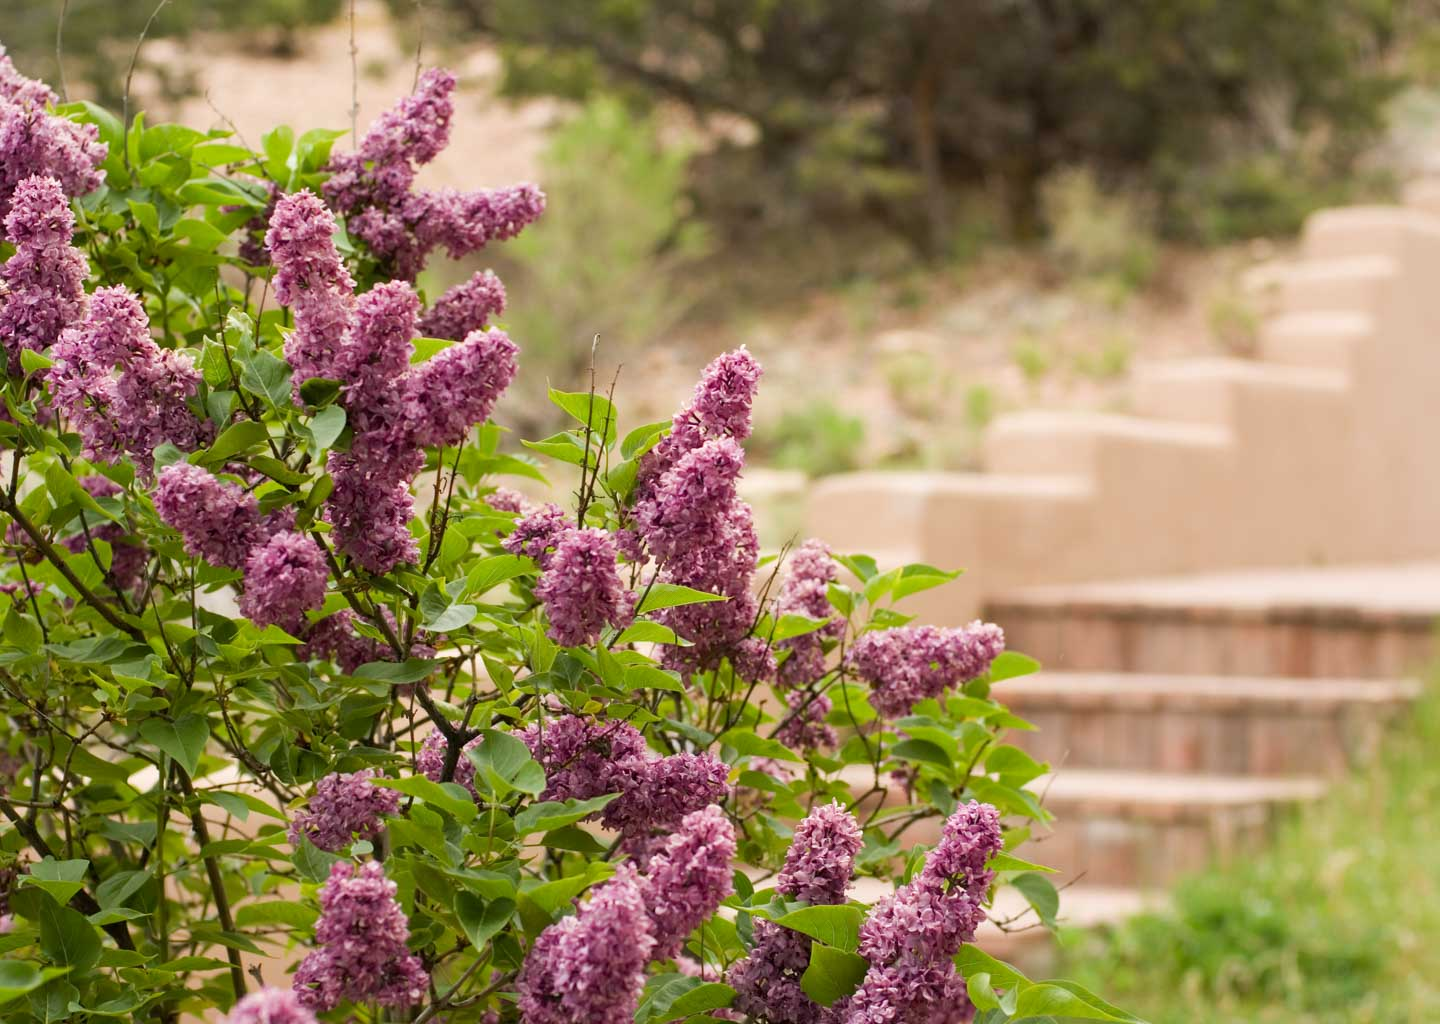 Bush of Purples Flowers on the Grounds of Fort Marcy Hotel Suites in Santa Fe, New Mexico